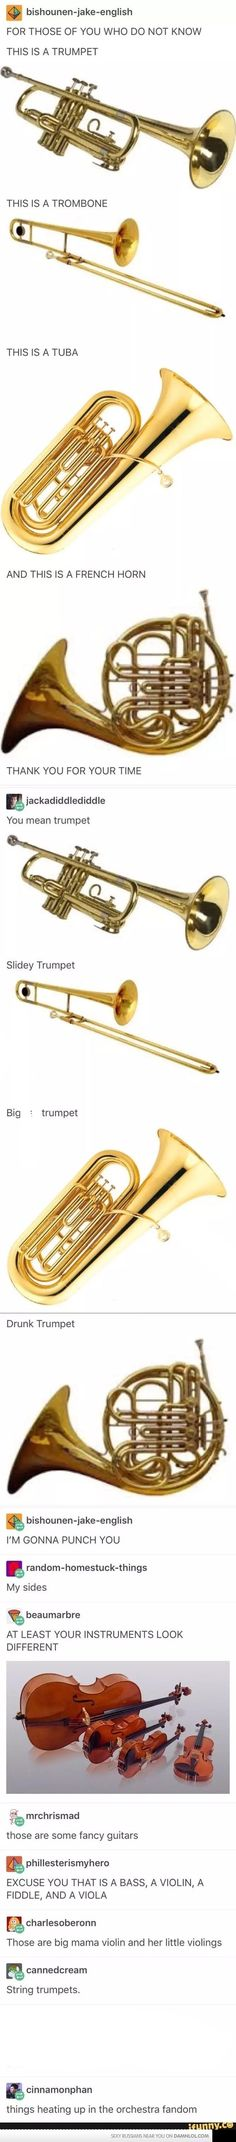 Types of instruments for the uneducated masses<== I'm pretty sure violins and fiddles are the same instrument